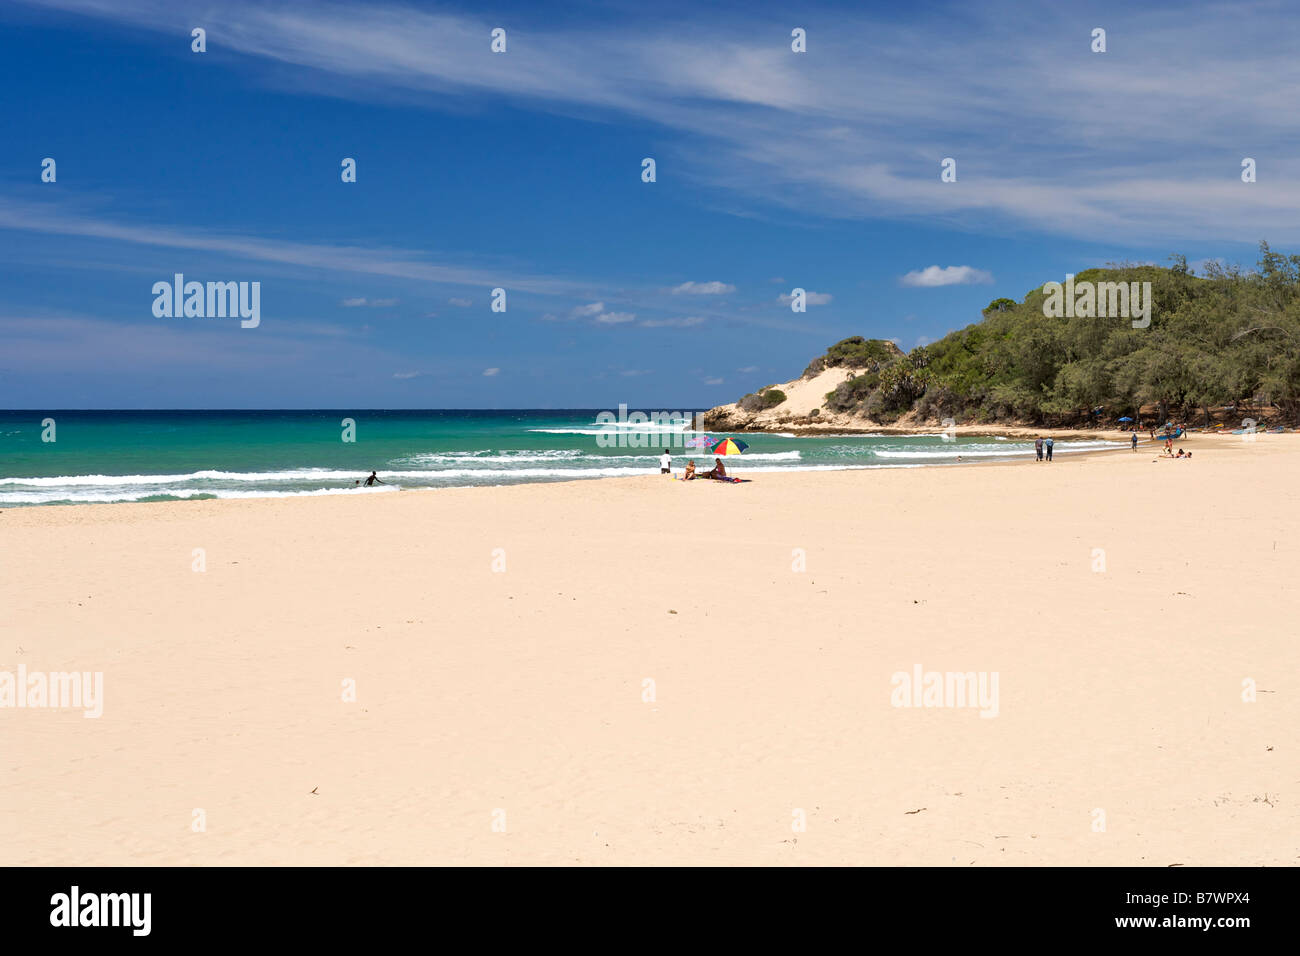 View of the beach and coast at Tofo in southern Mozambique. - Stock Image